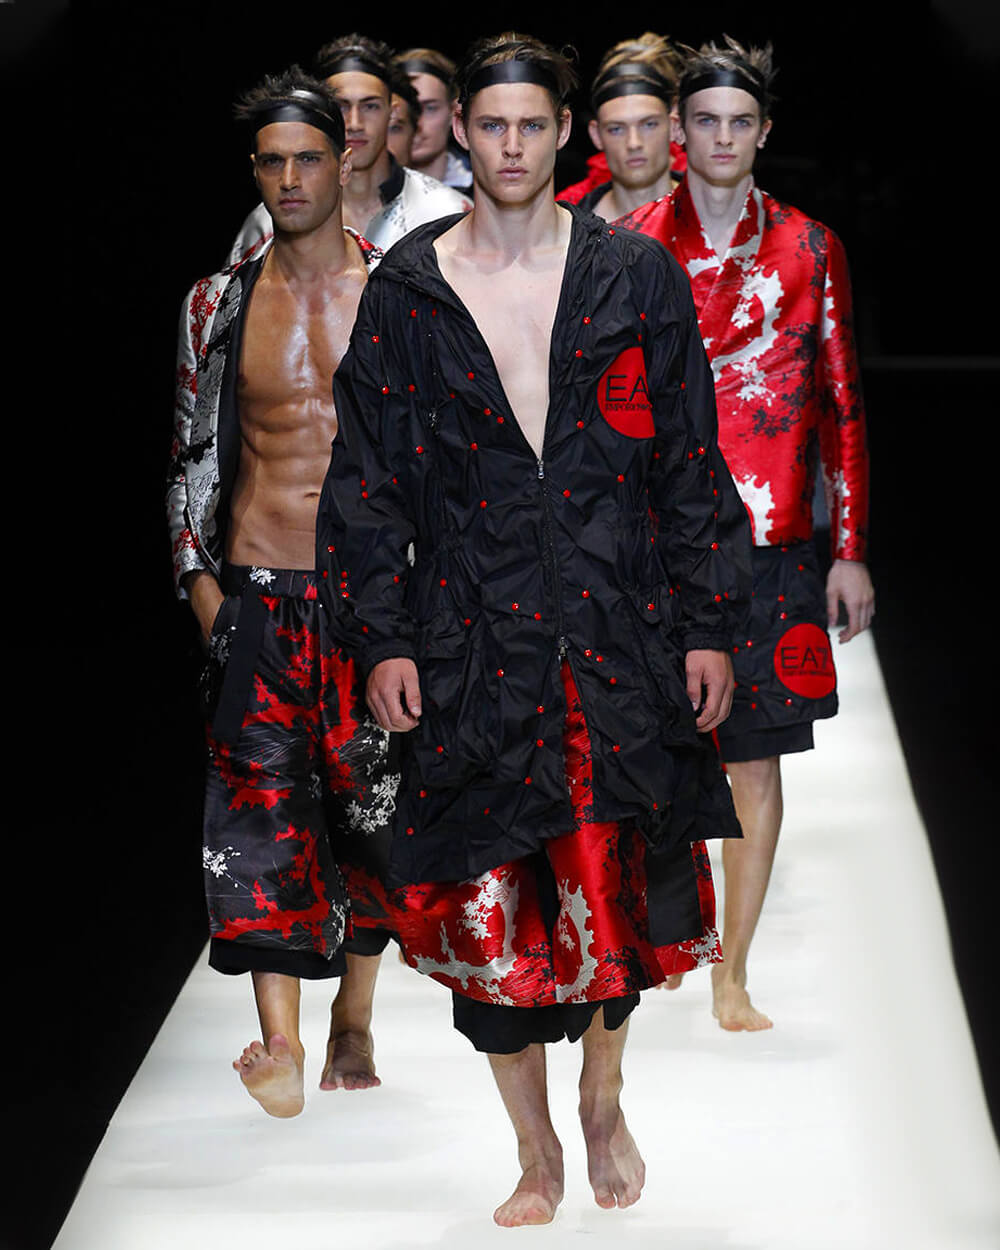 Emporio Armani SS18 Collection inspired by Japanese fashion